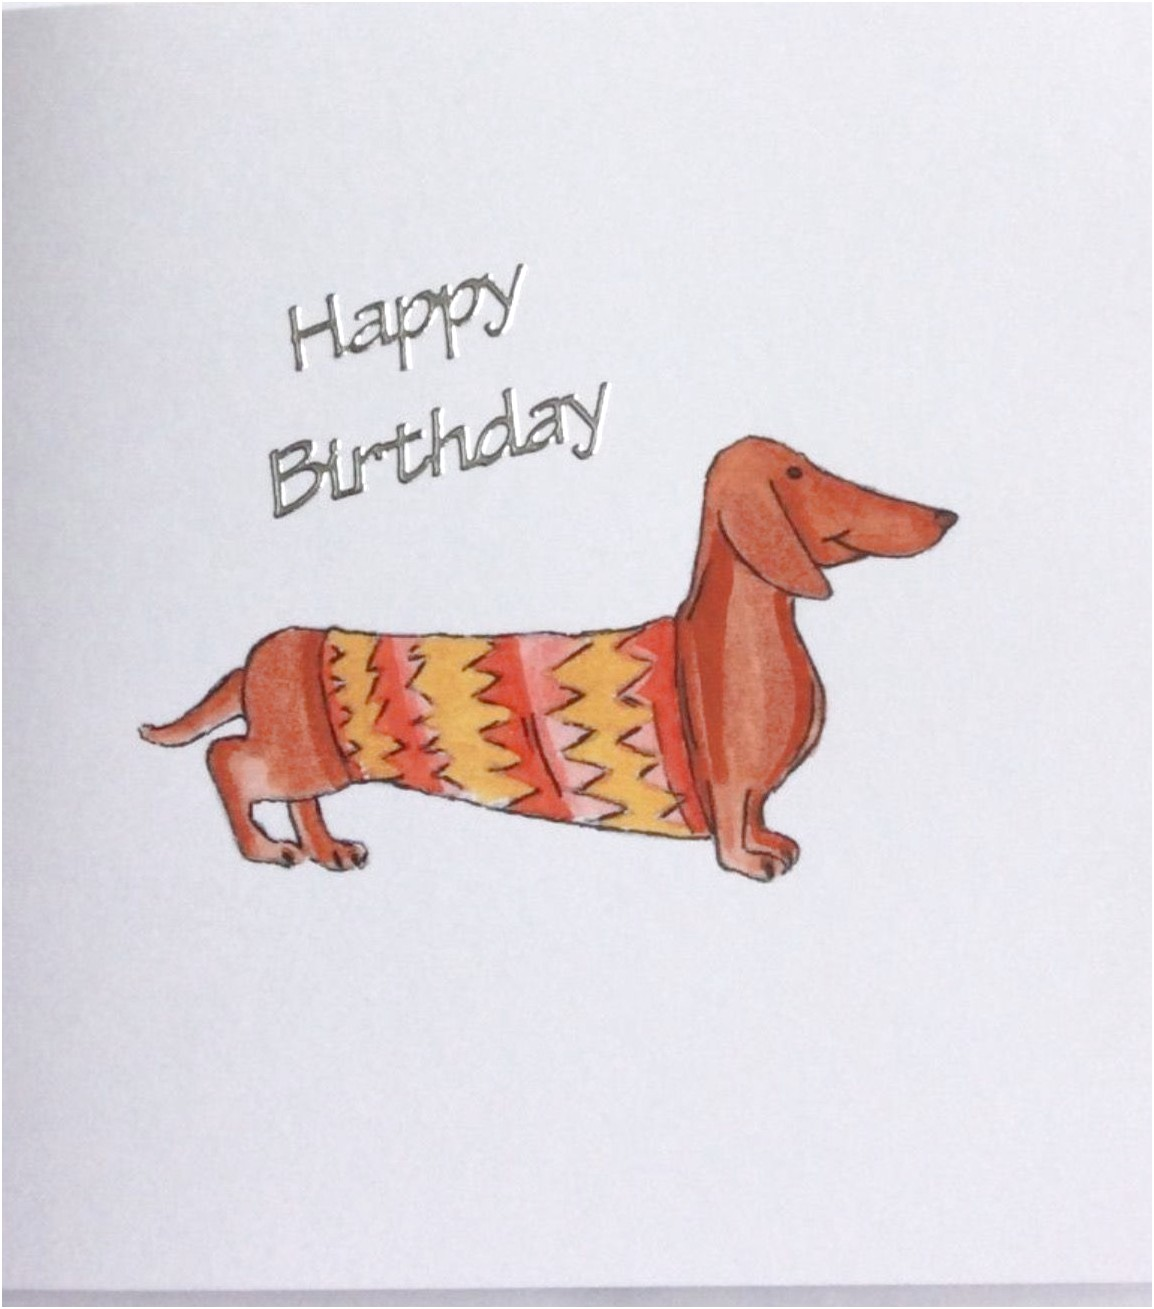 dachshund items for sale